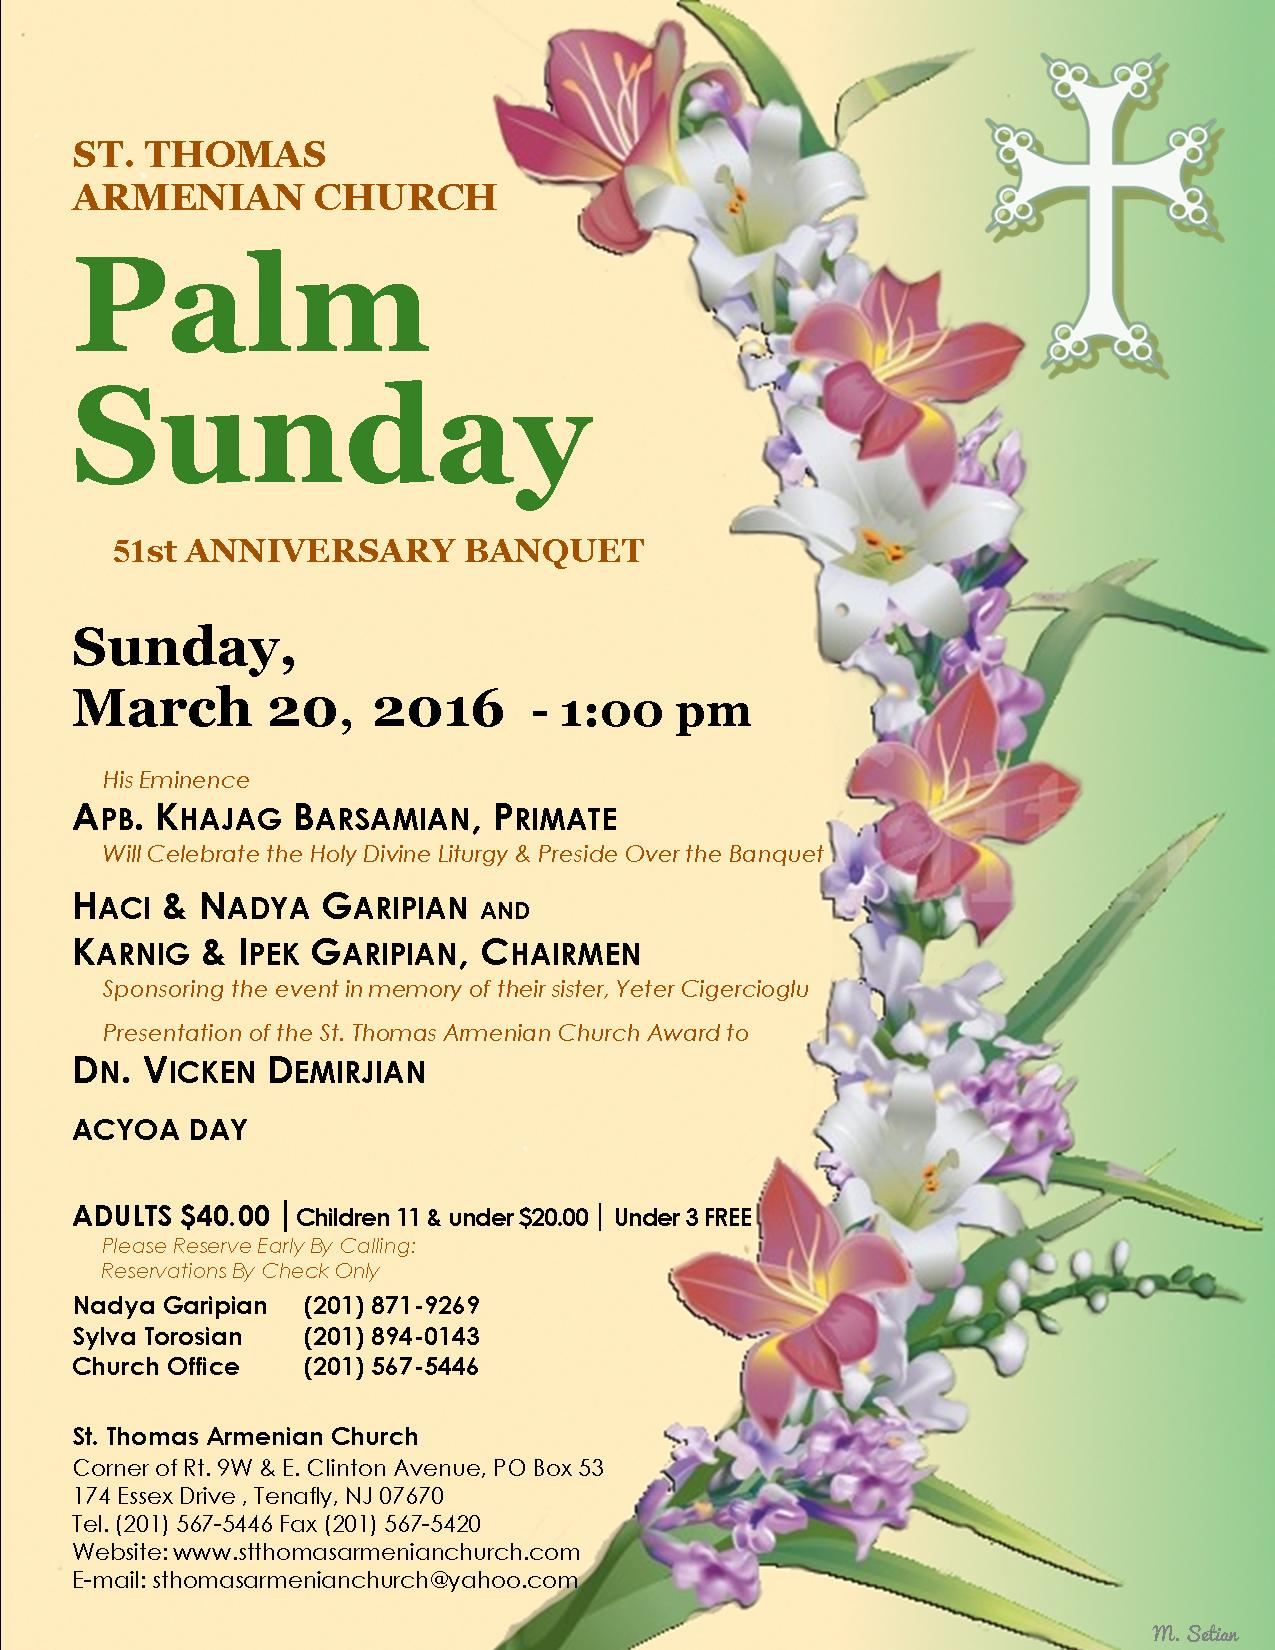 palm sunday st anniversary banquet st thomas n flyer st thomas n church cordially invites you to the